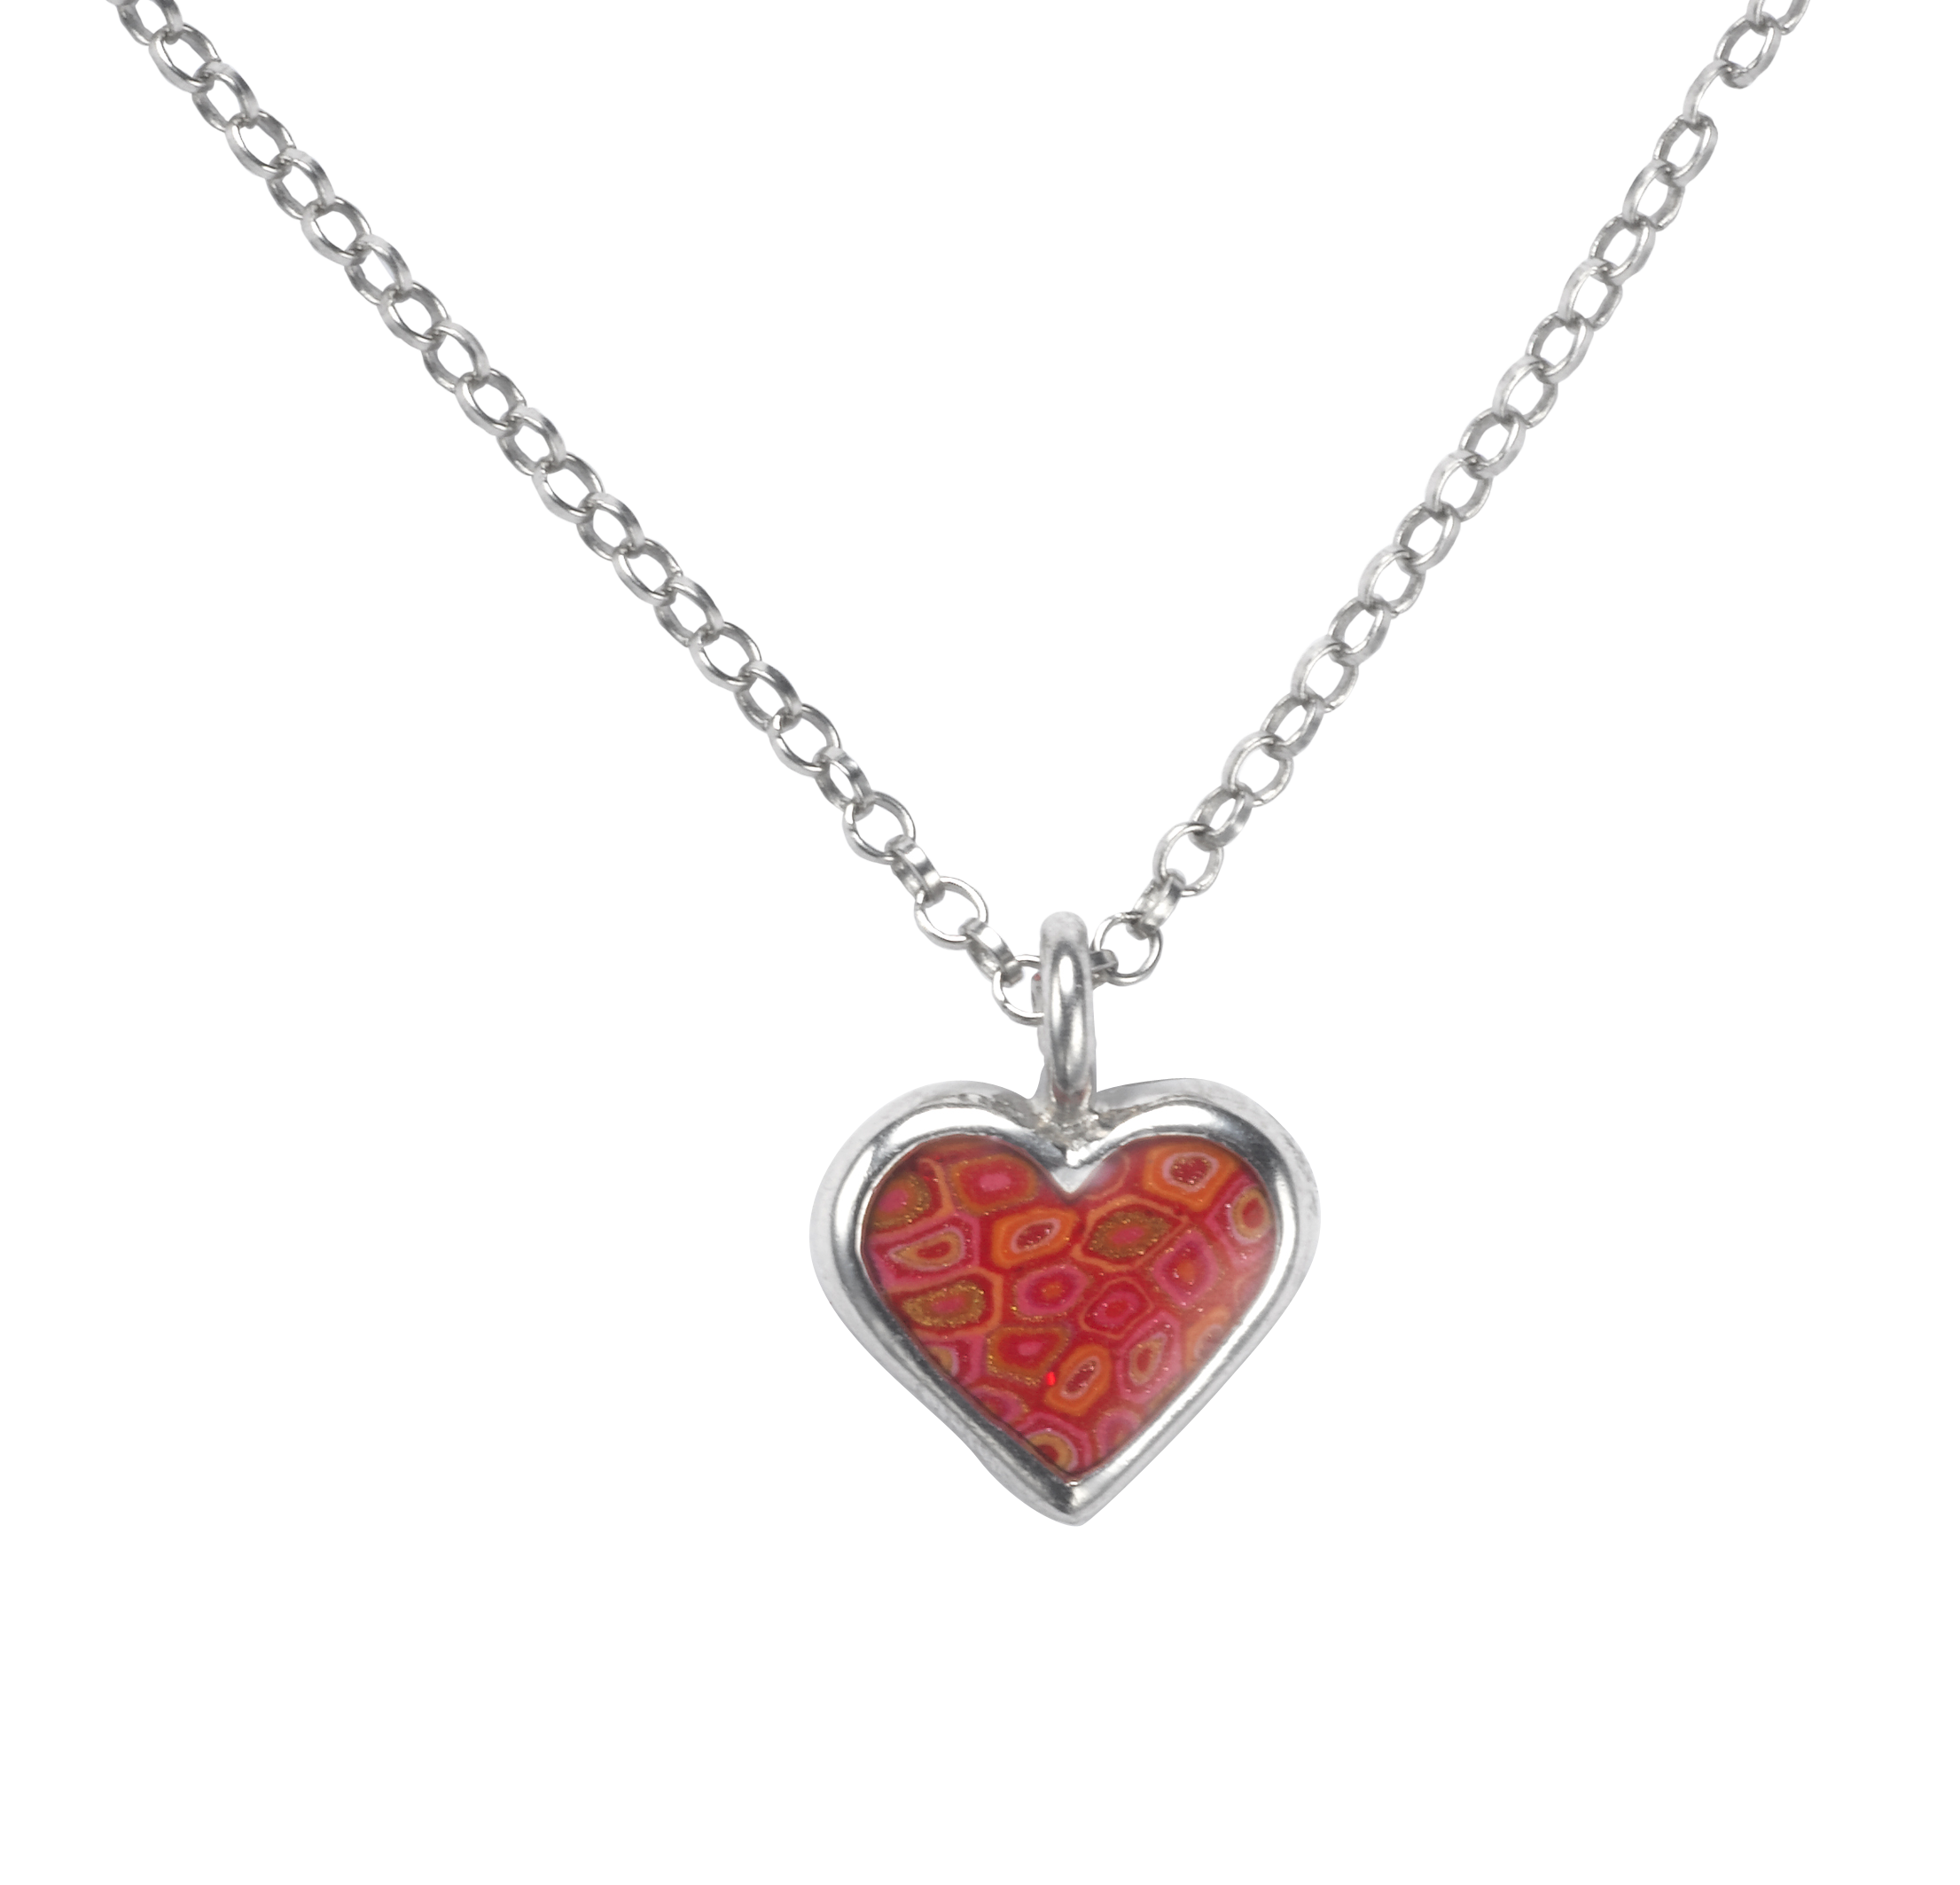 Heart necklace png. Images free download